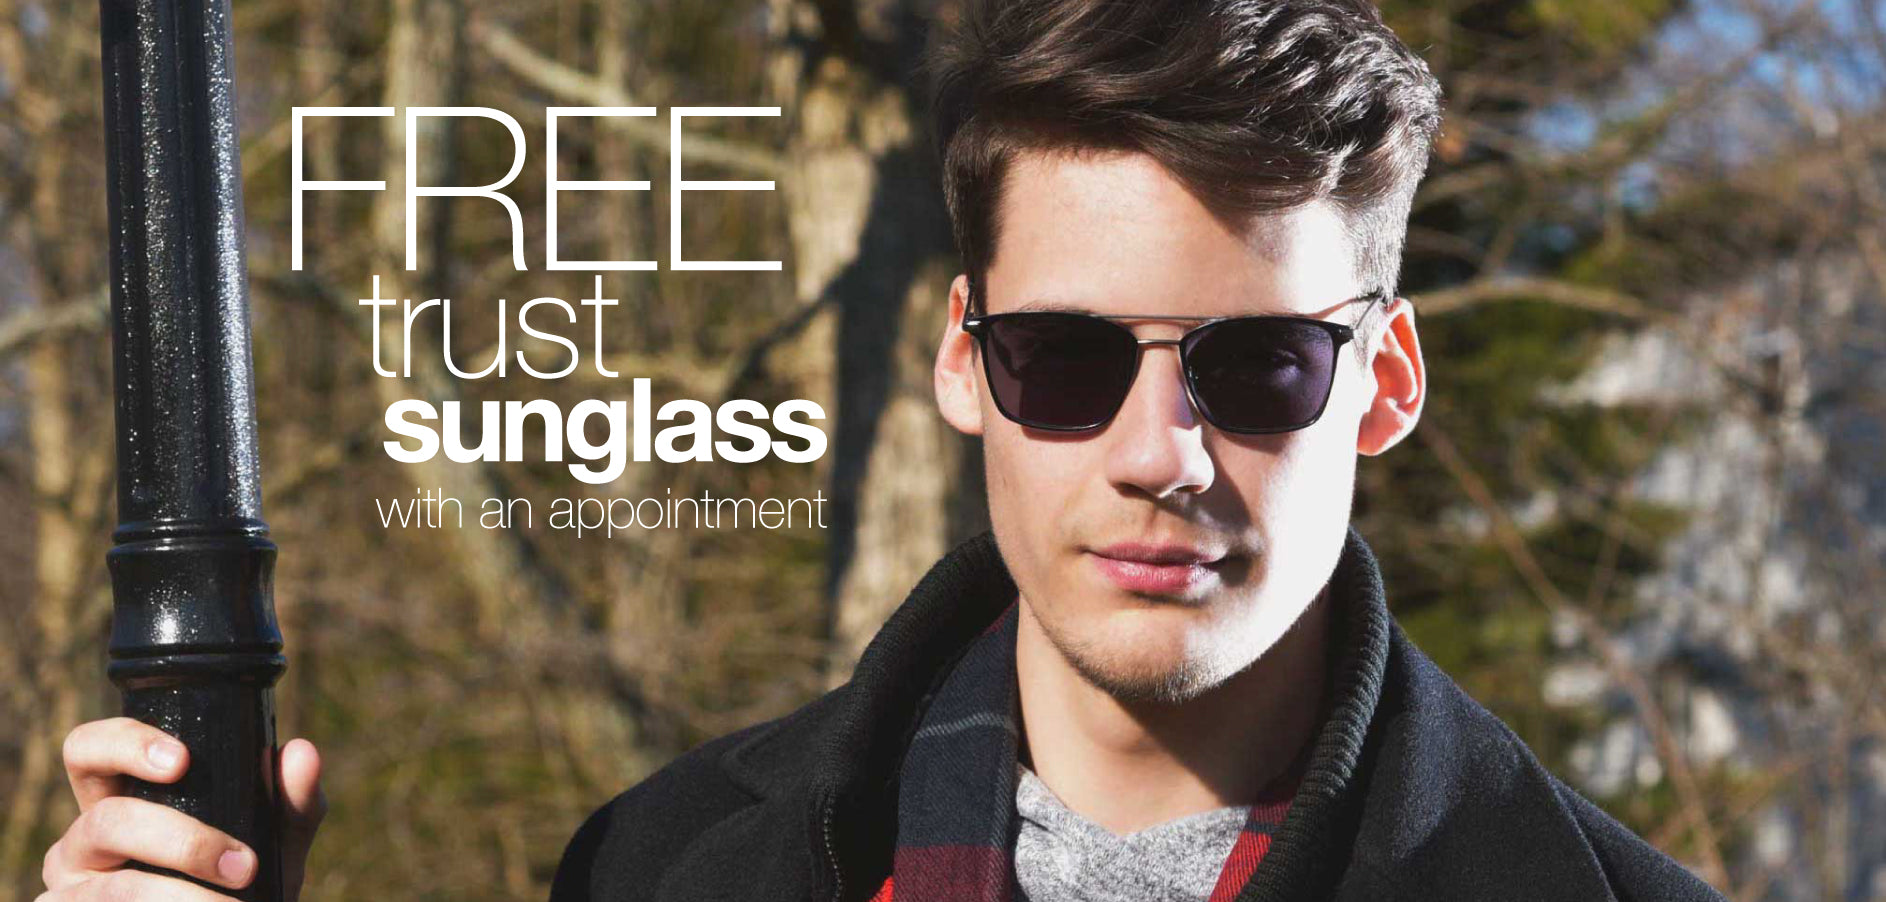 Request Your Free Trust Sunglass